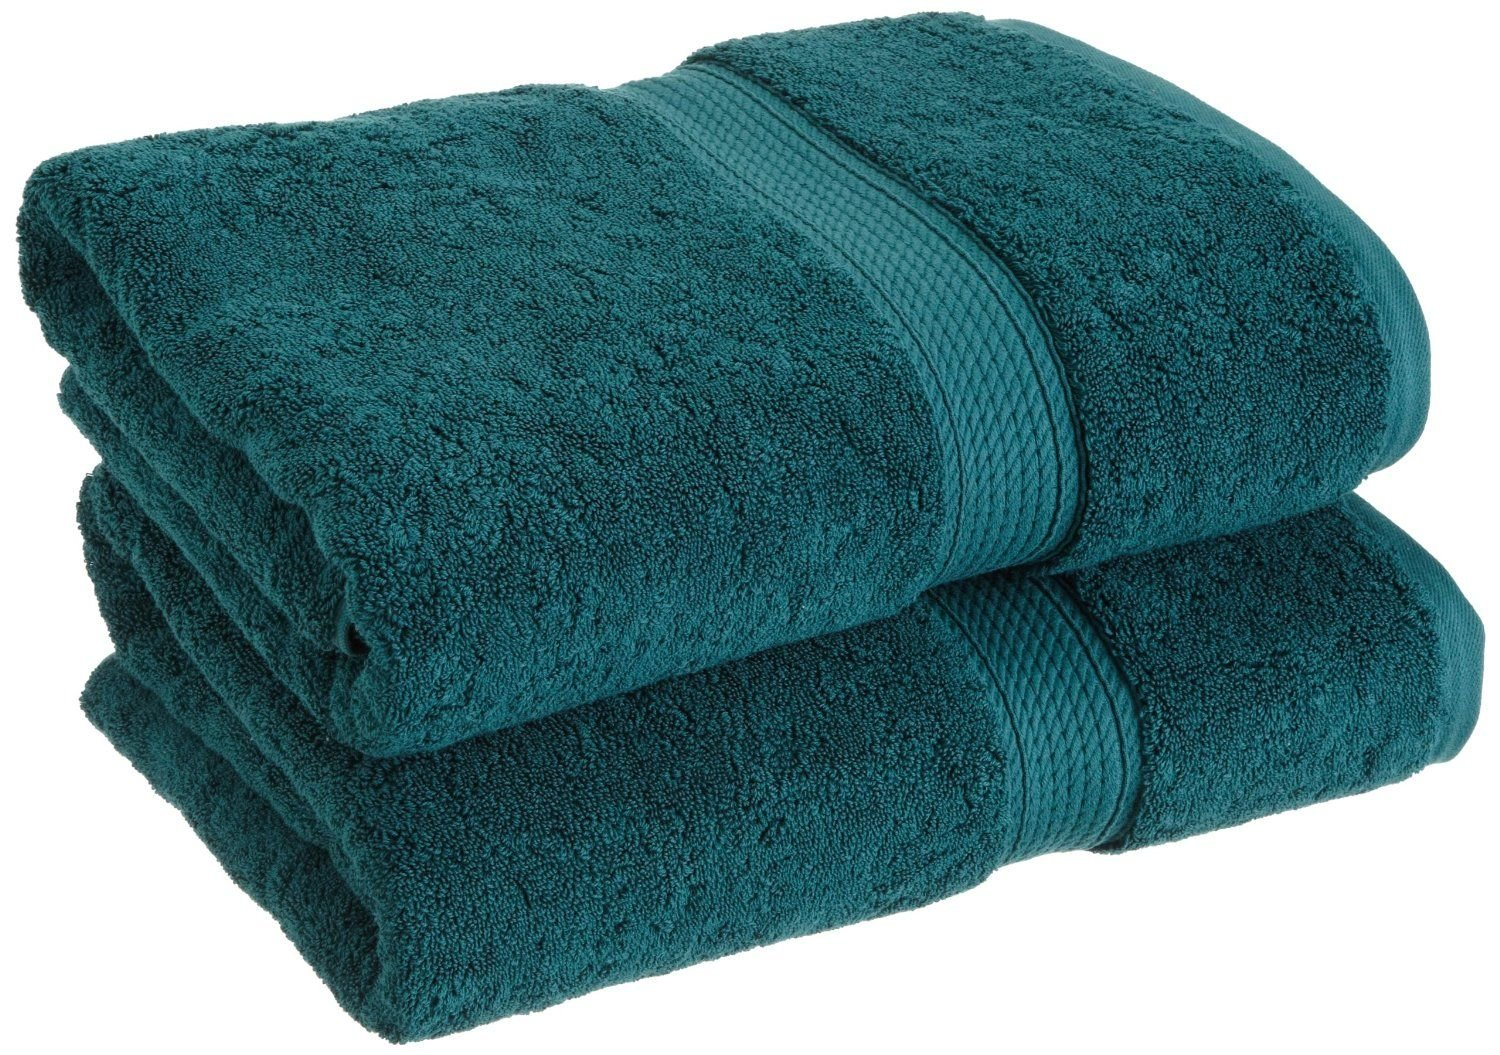 Amazoncom Superior 900 GSM Luxury Bathroom Towels Made of 100